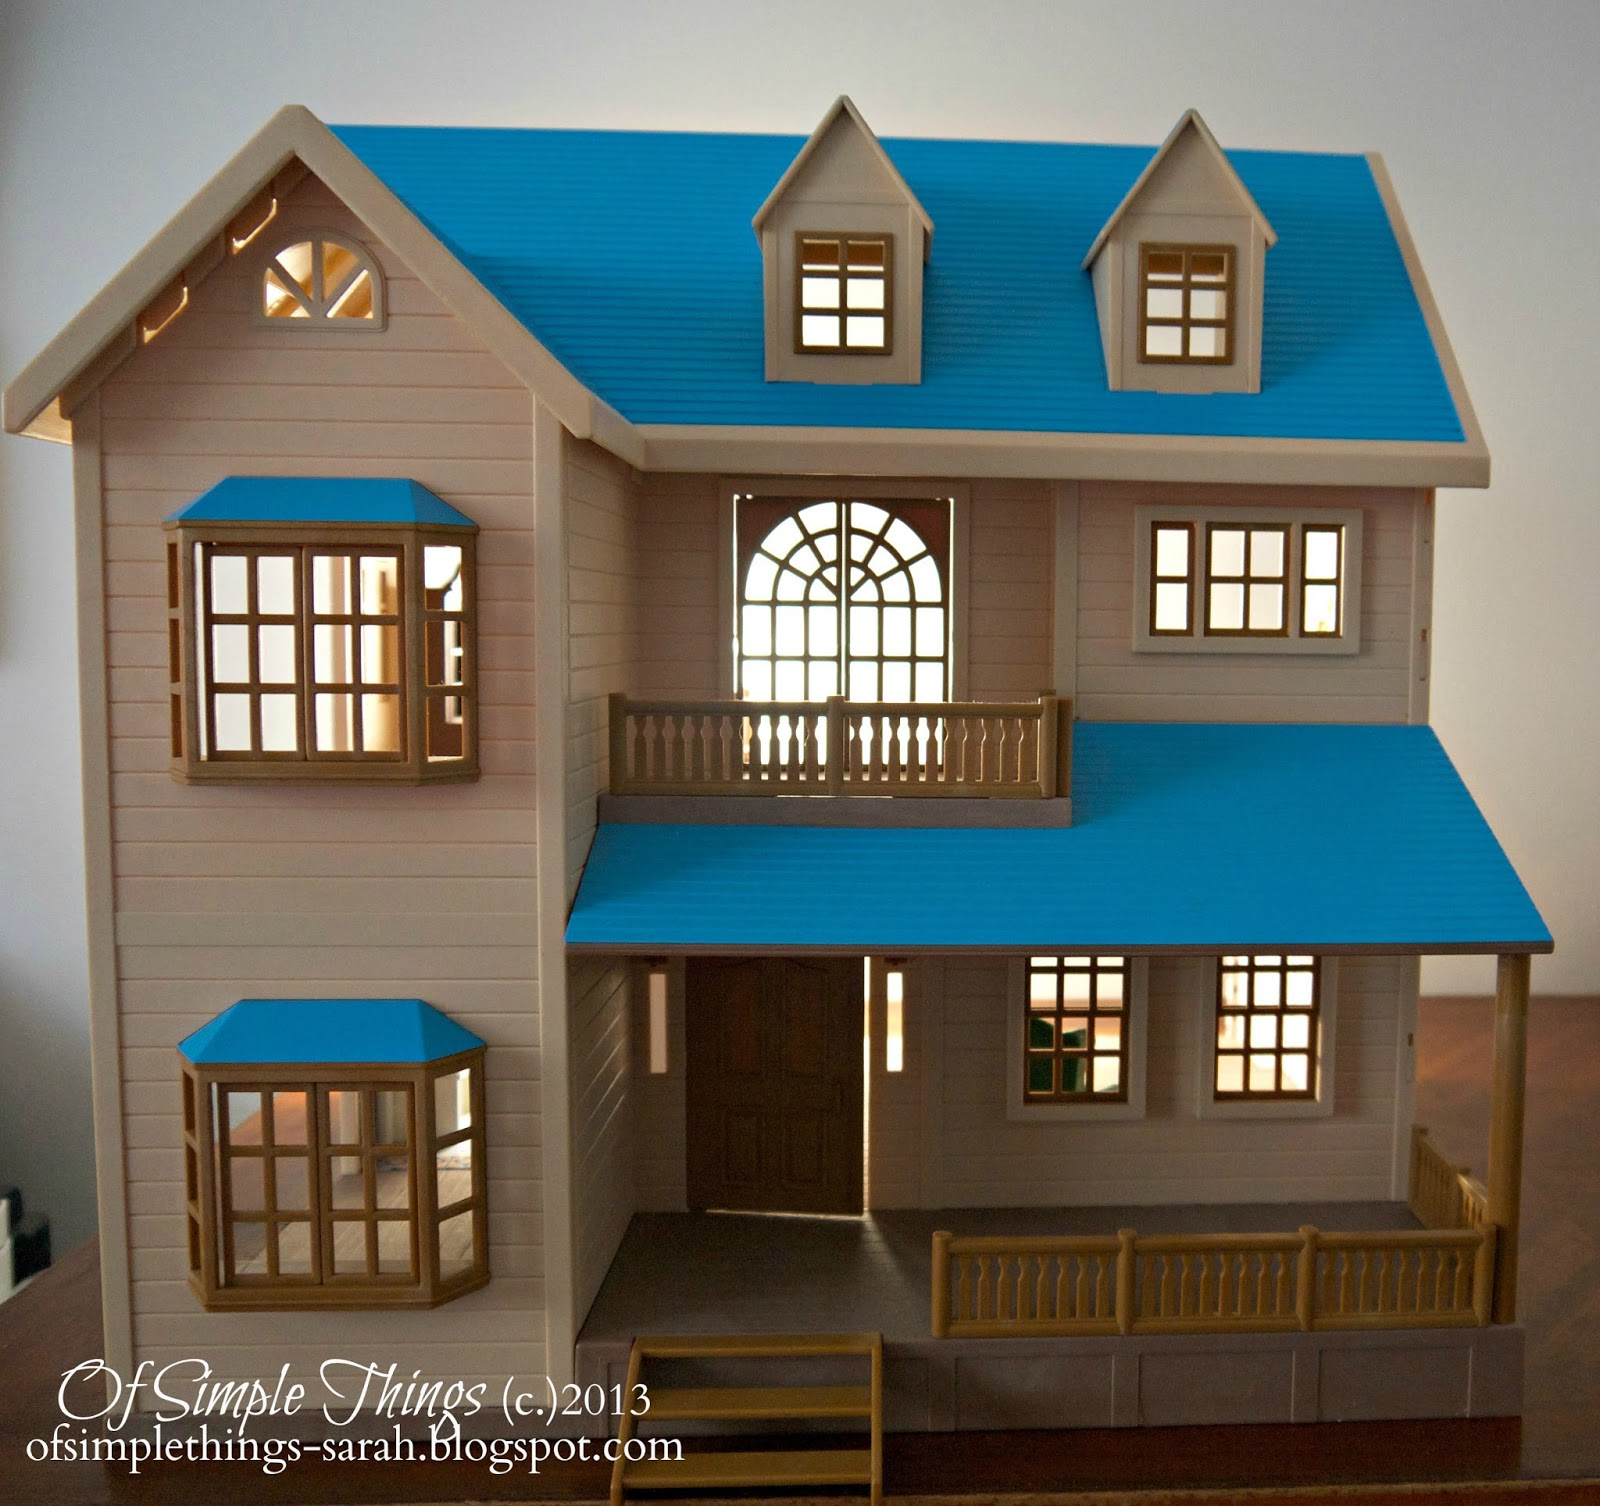 Of Simple Things: Dollhouse Decorating (Part 1